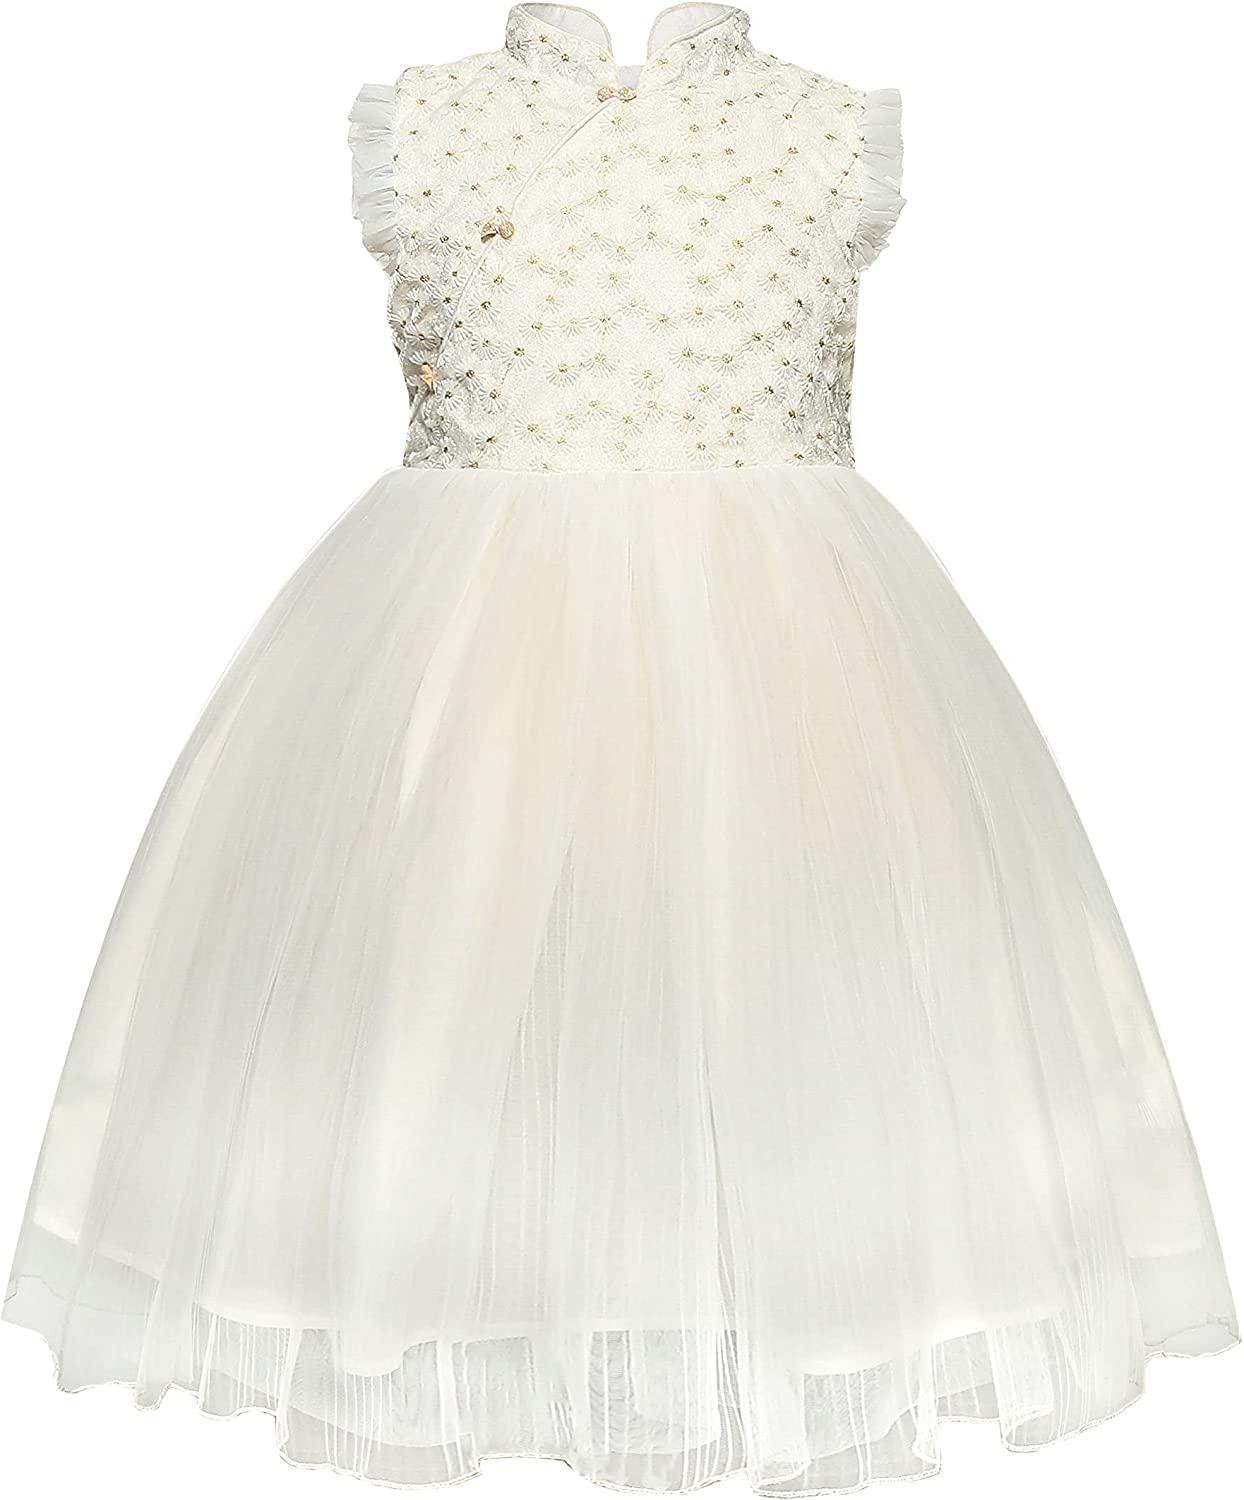 Floral White Flower Girl Junior Bridesmaid Birthday Holiday Dress Wedding Party First Communion Tulle Dress